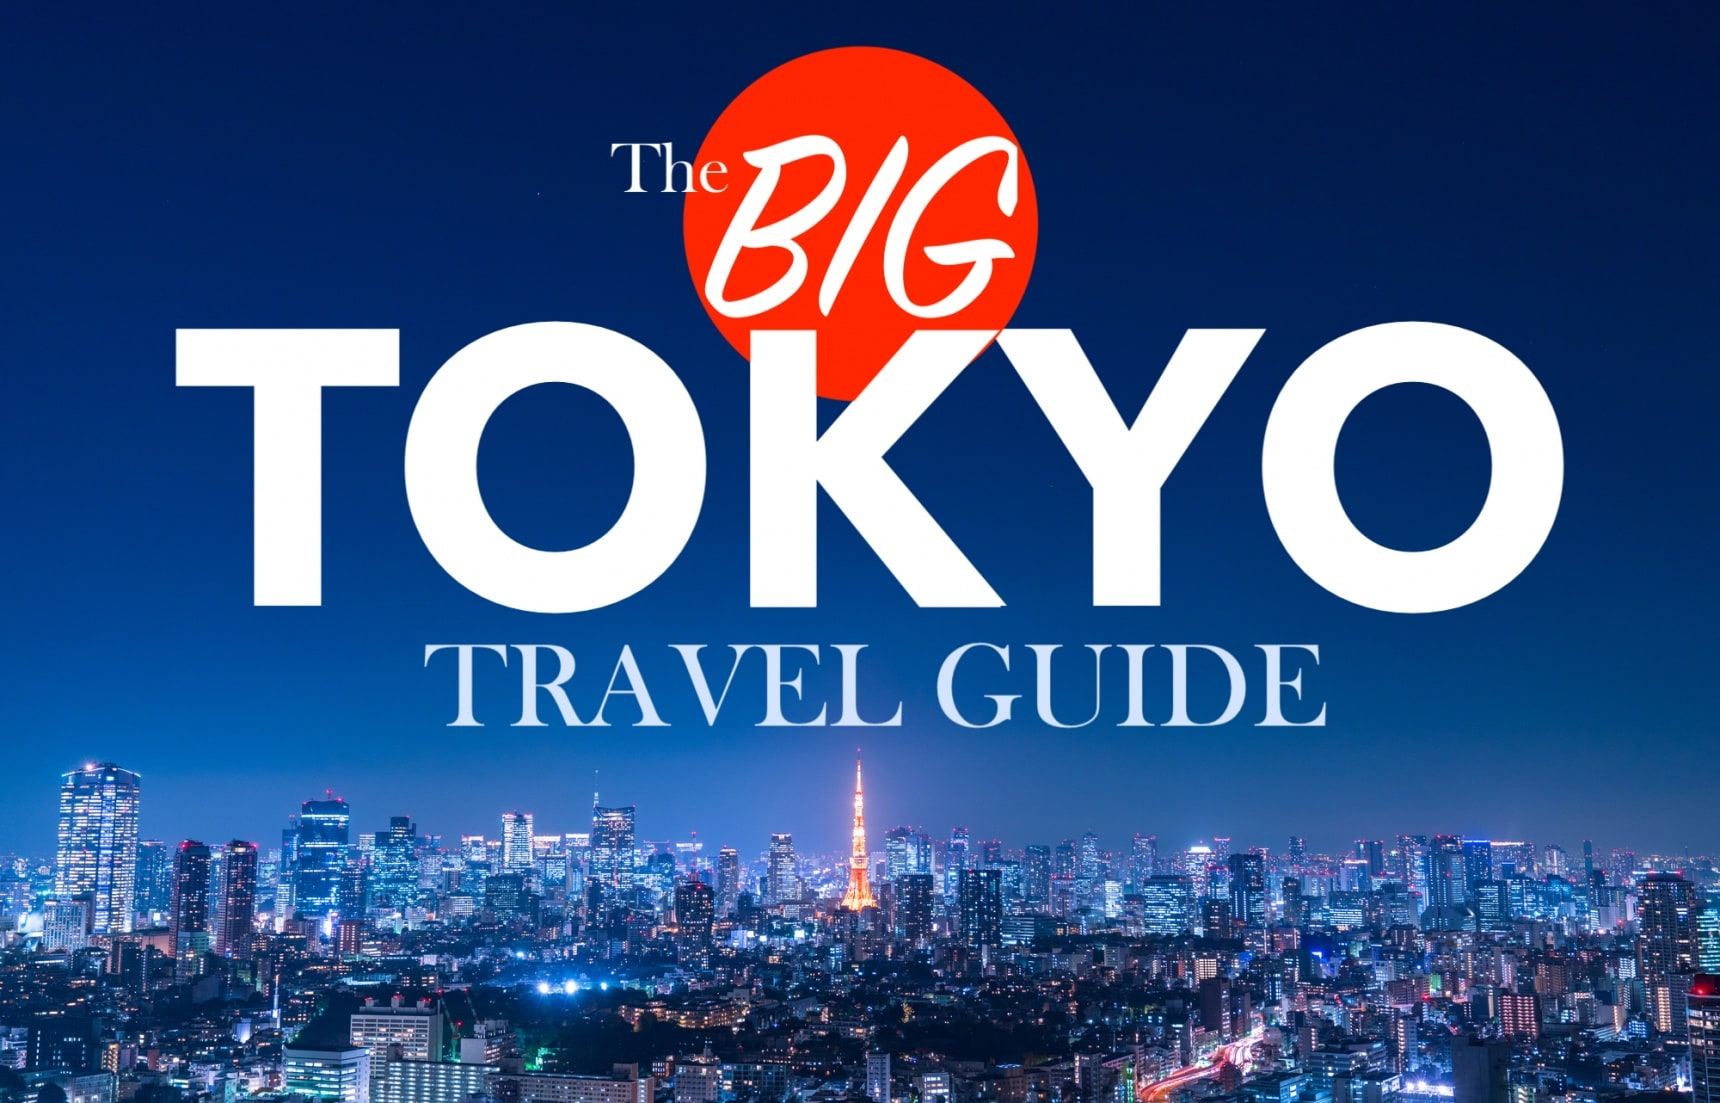 The Big Tokyo Travel Guide